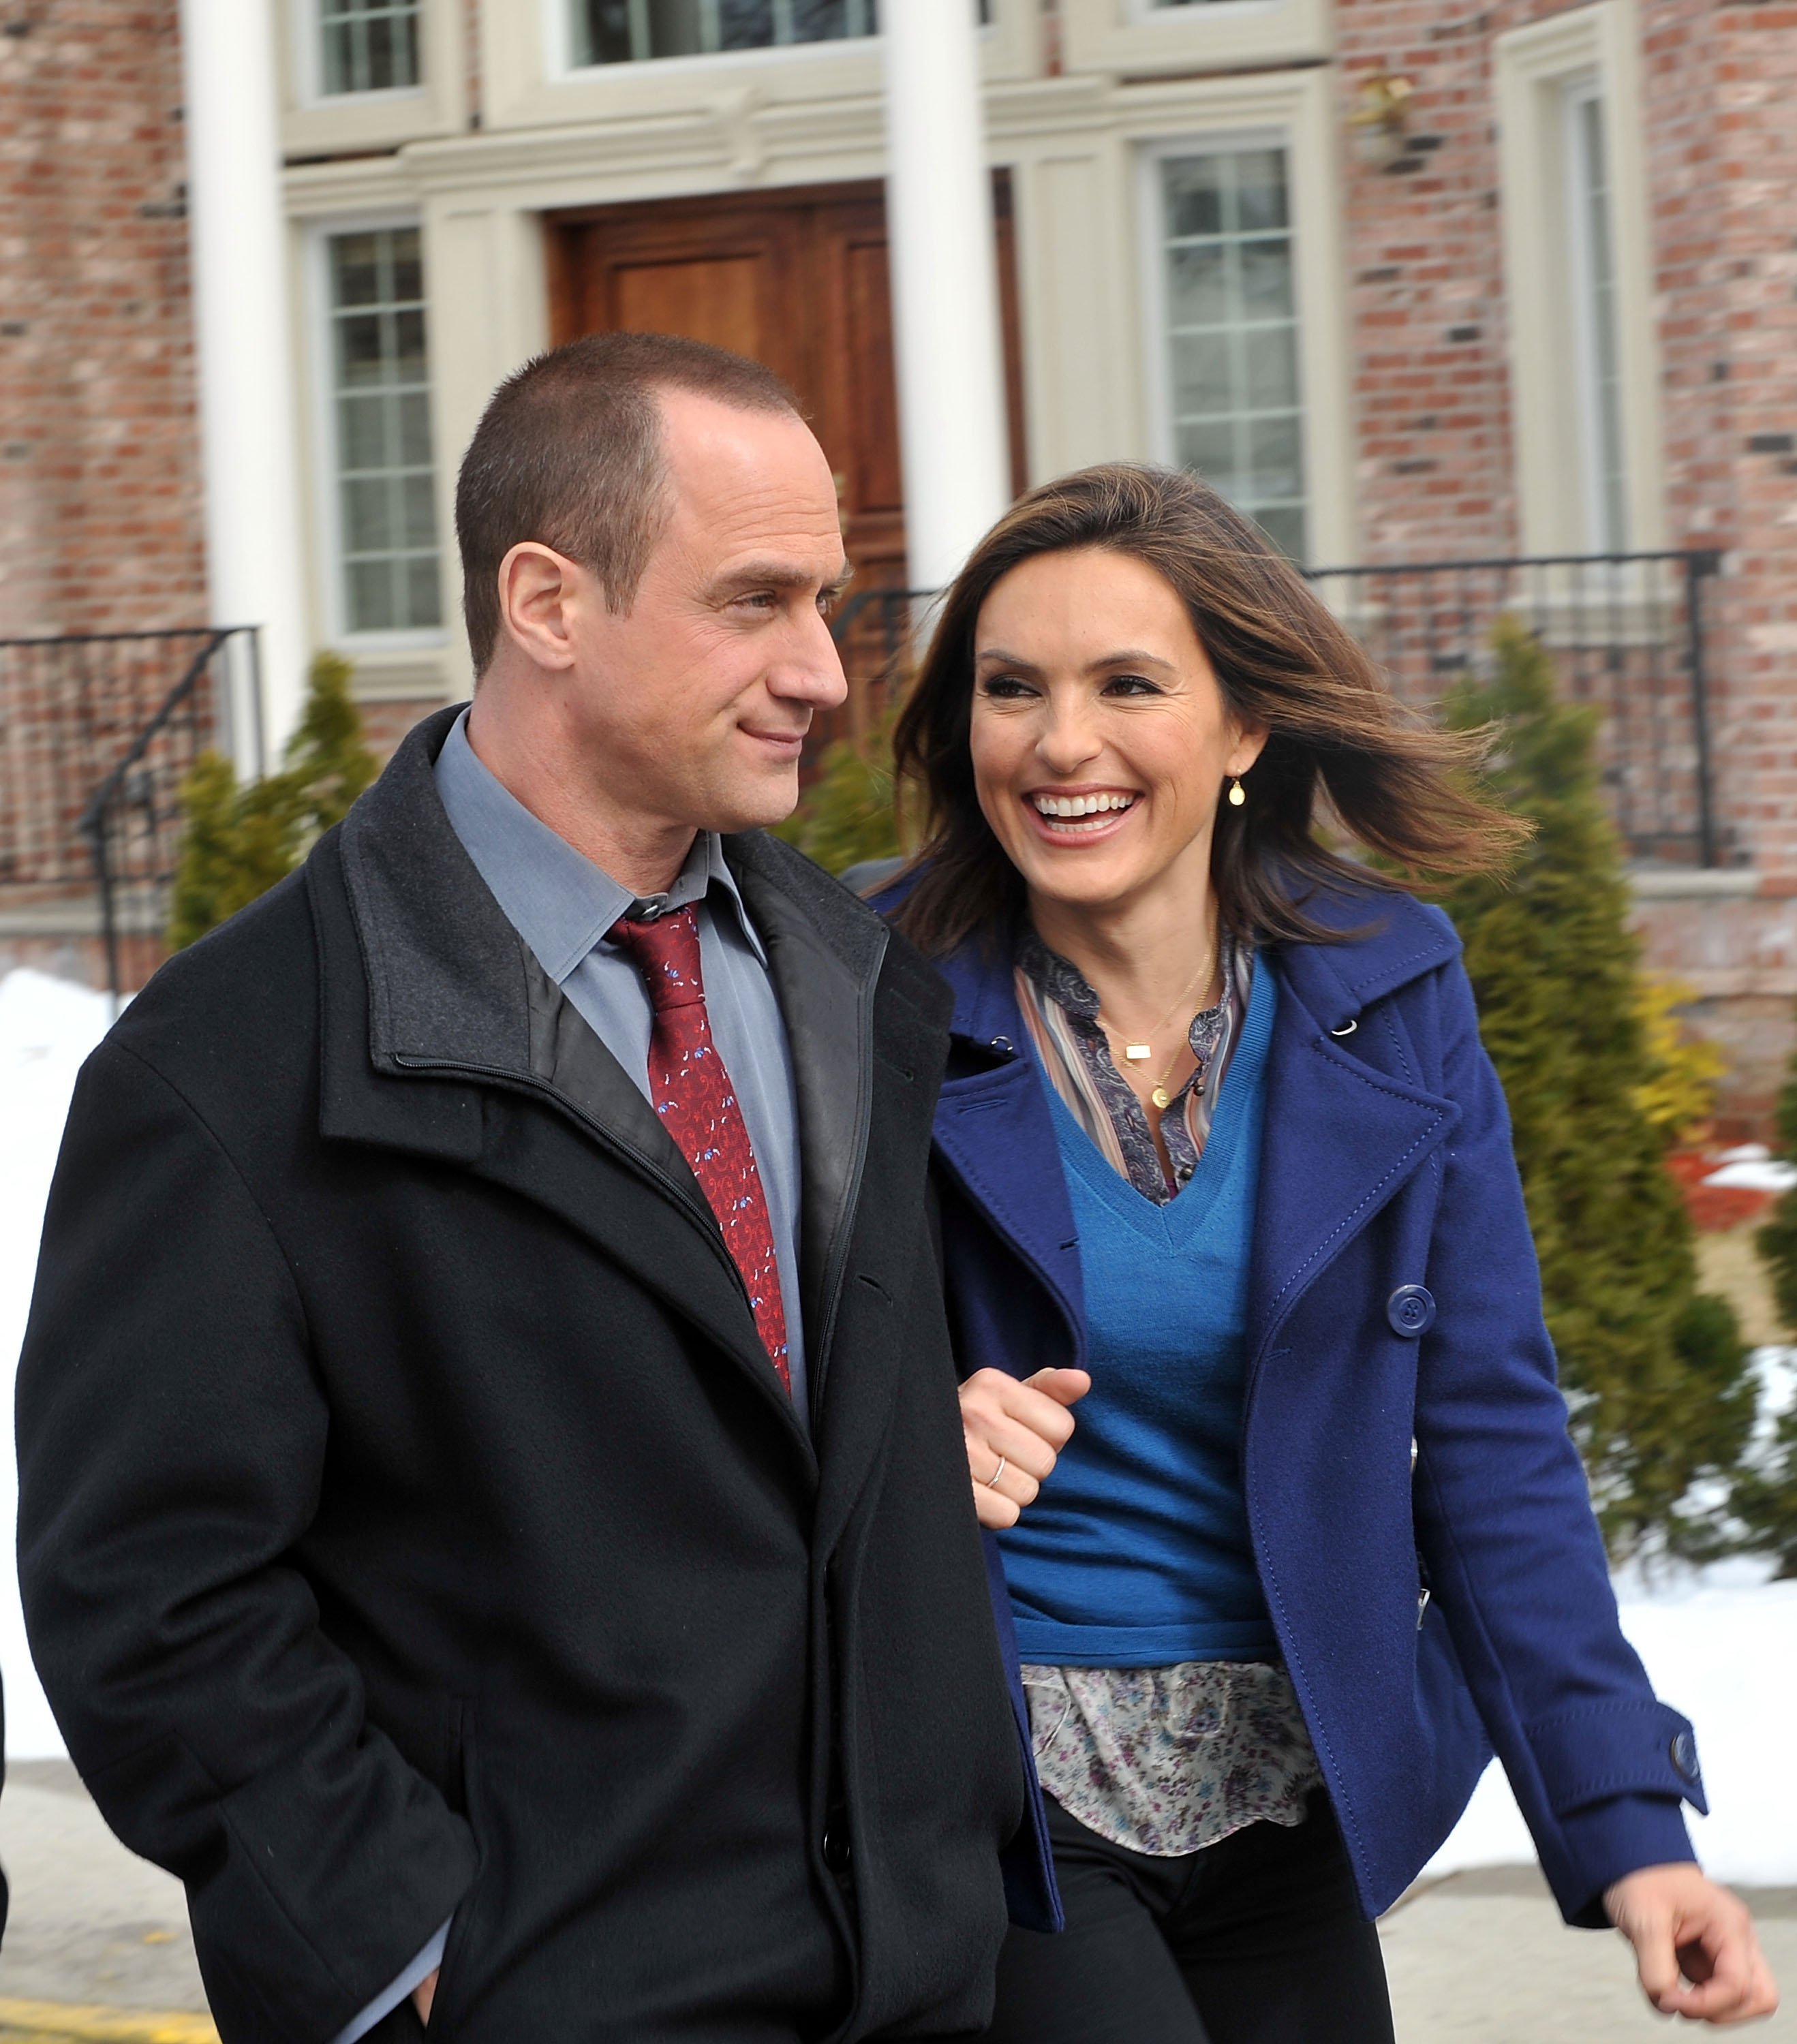 """Christopher Meloni and Mariska Hargitay on location for """"Law & Order: SVU"""" on the streets of Fort Lee, NJ on March 4, 2010 in Fort Lee City 